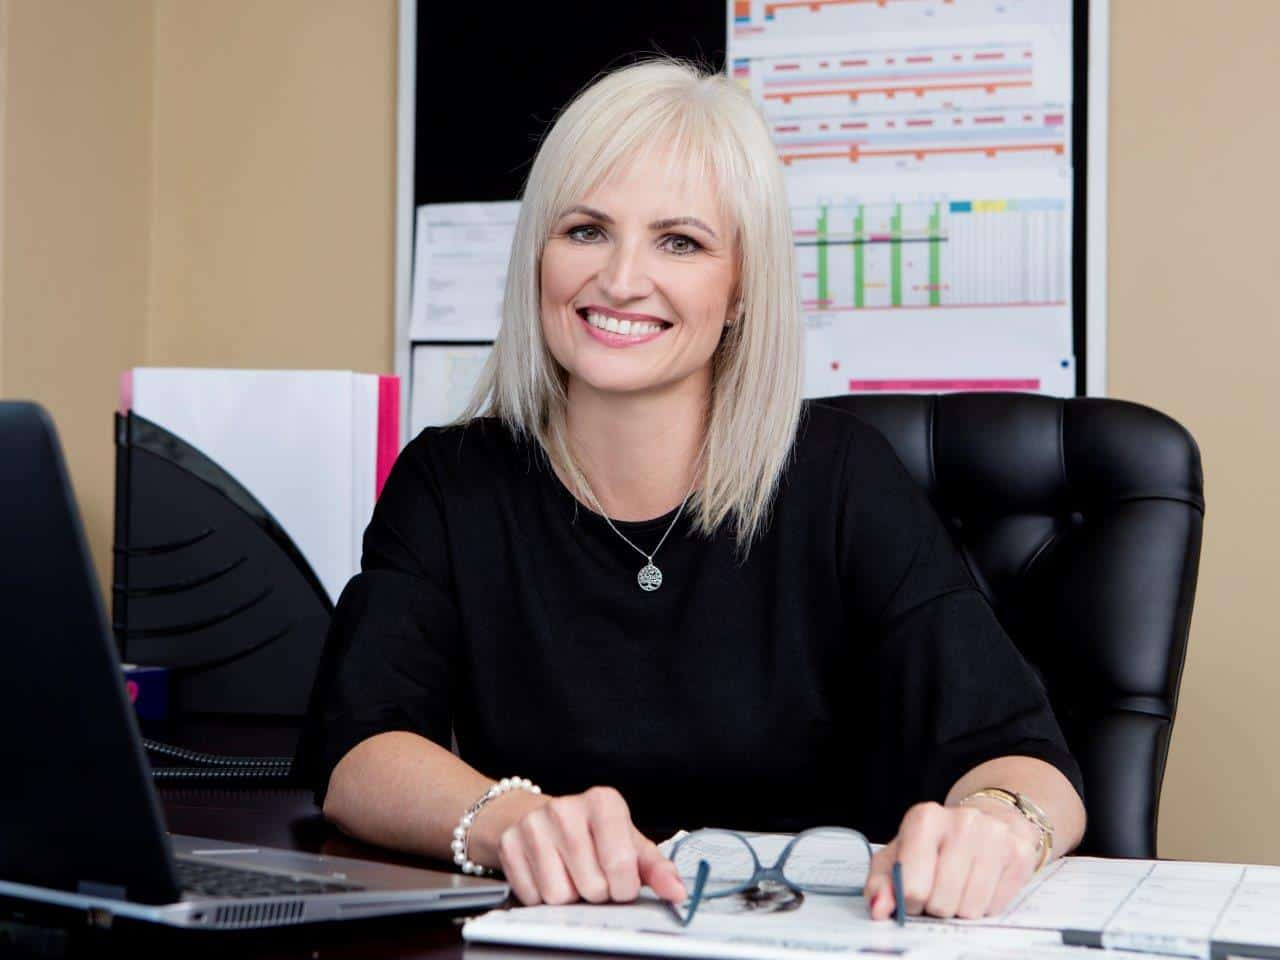 Anneke Potgieter, the general manager at Silverstar Casino